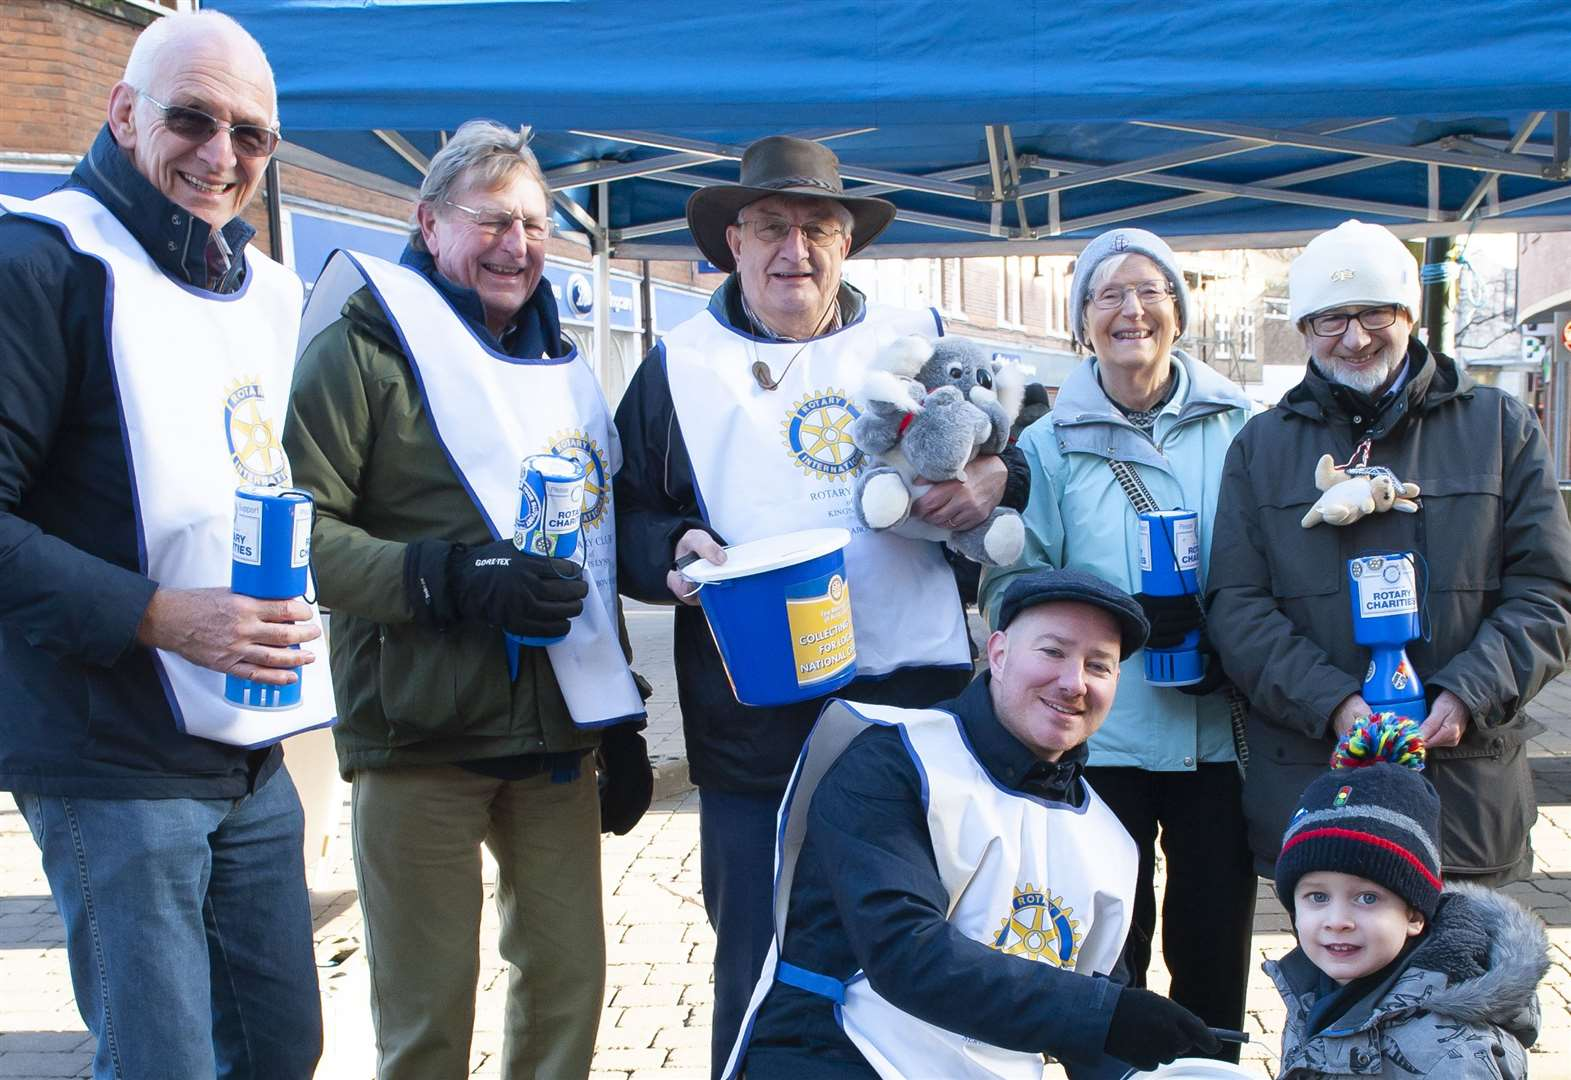 Rotarians in King's Lynn collect £2,500 for Australian bushfire relief effort